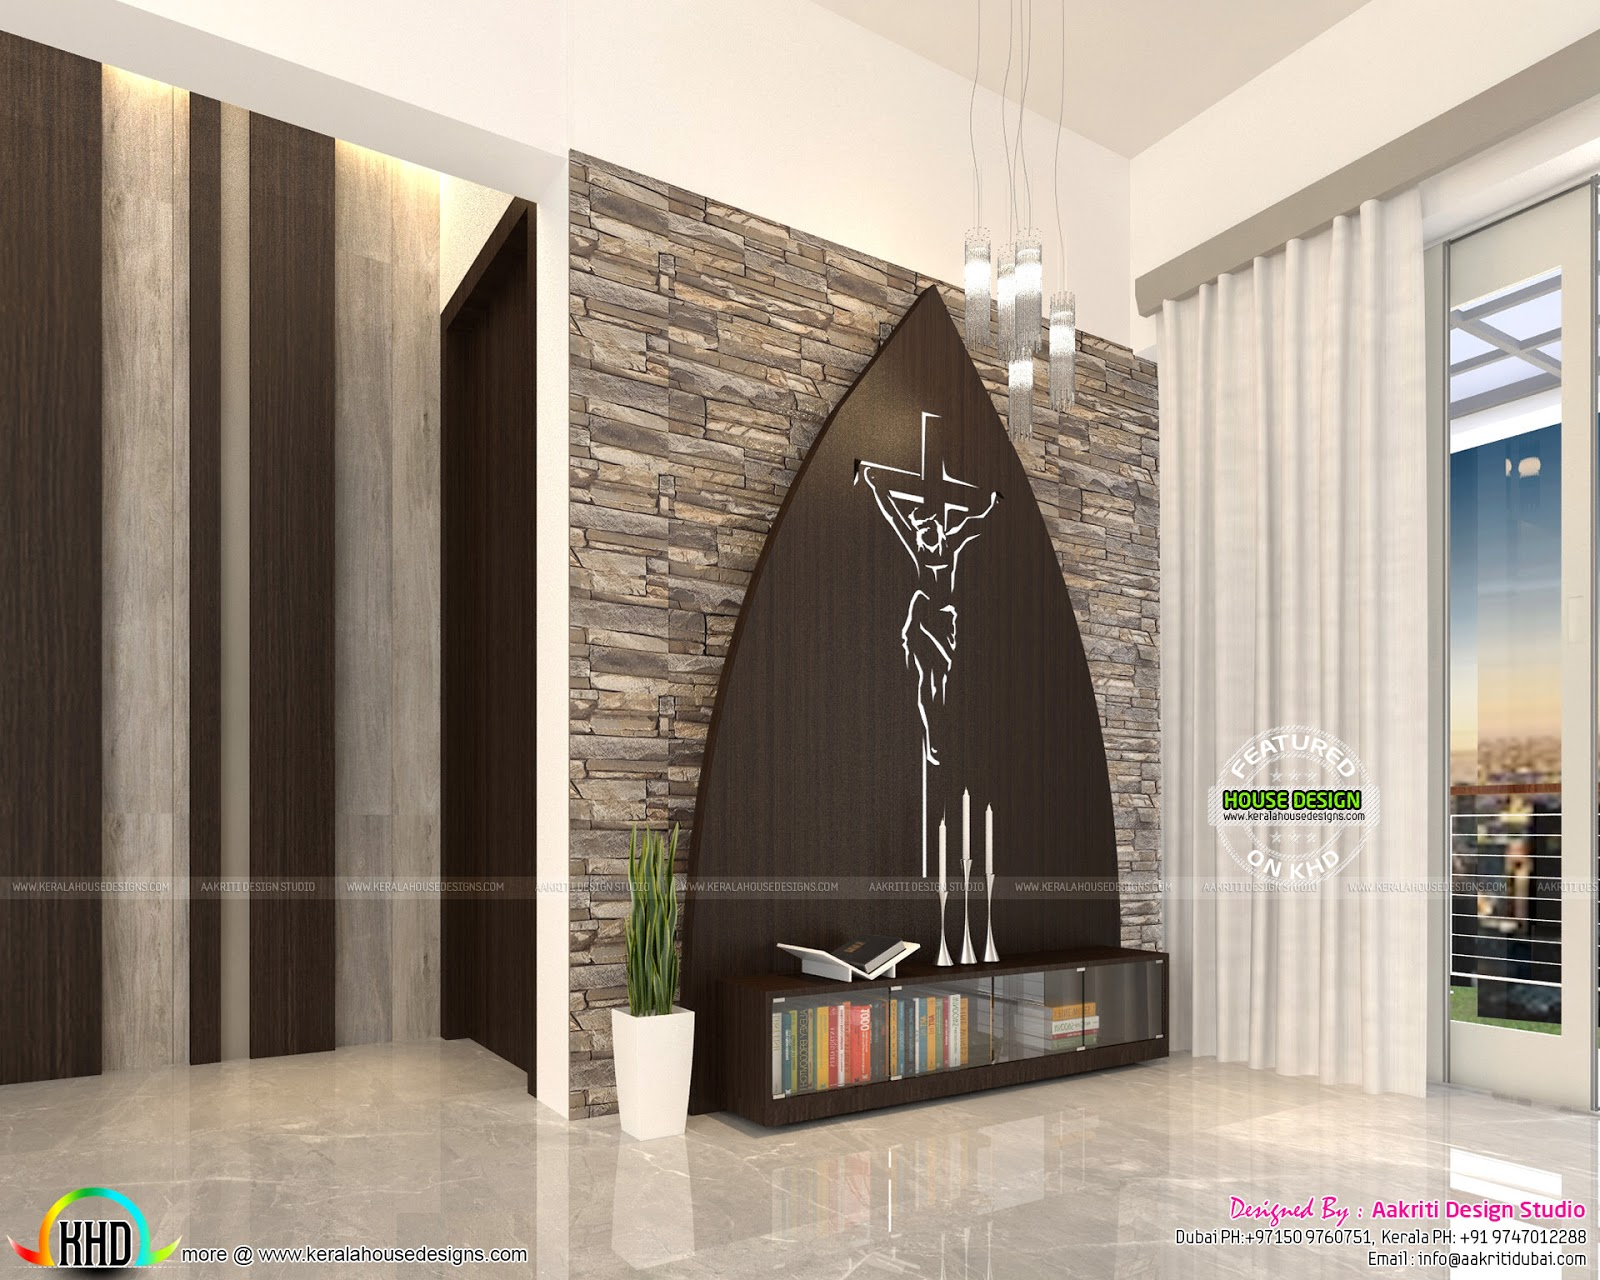 Flat interior designs in kerala kerala home design and floor plans Interior design ideas for kerala houses